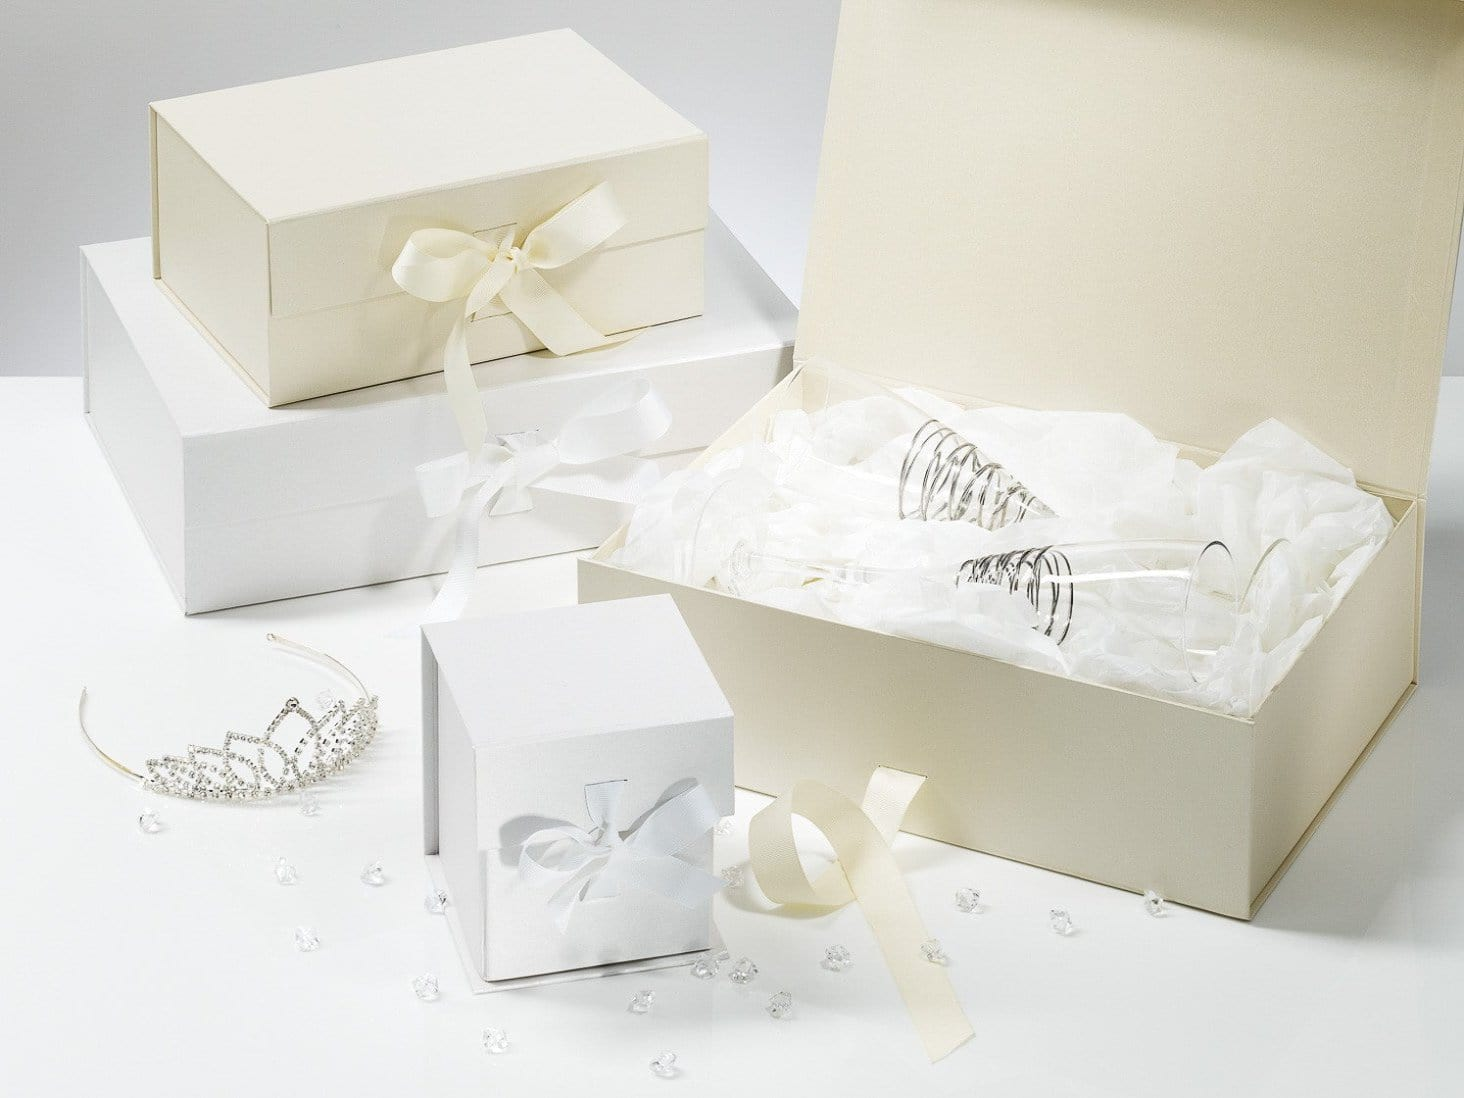 Wholesale white hamper gift boxes and keepsake boxes from foldabox foldabox uk white and ivory folding gift boxes for wedding and baby gifts and hampers negle Image collections